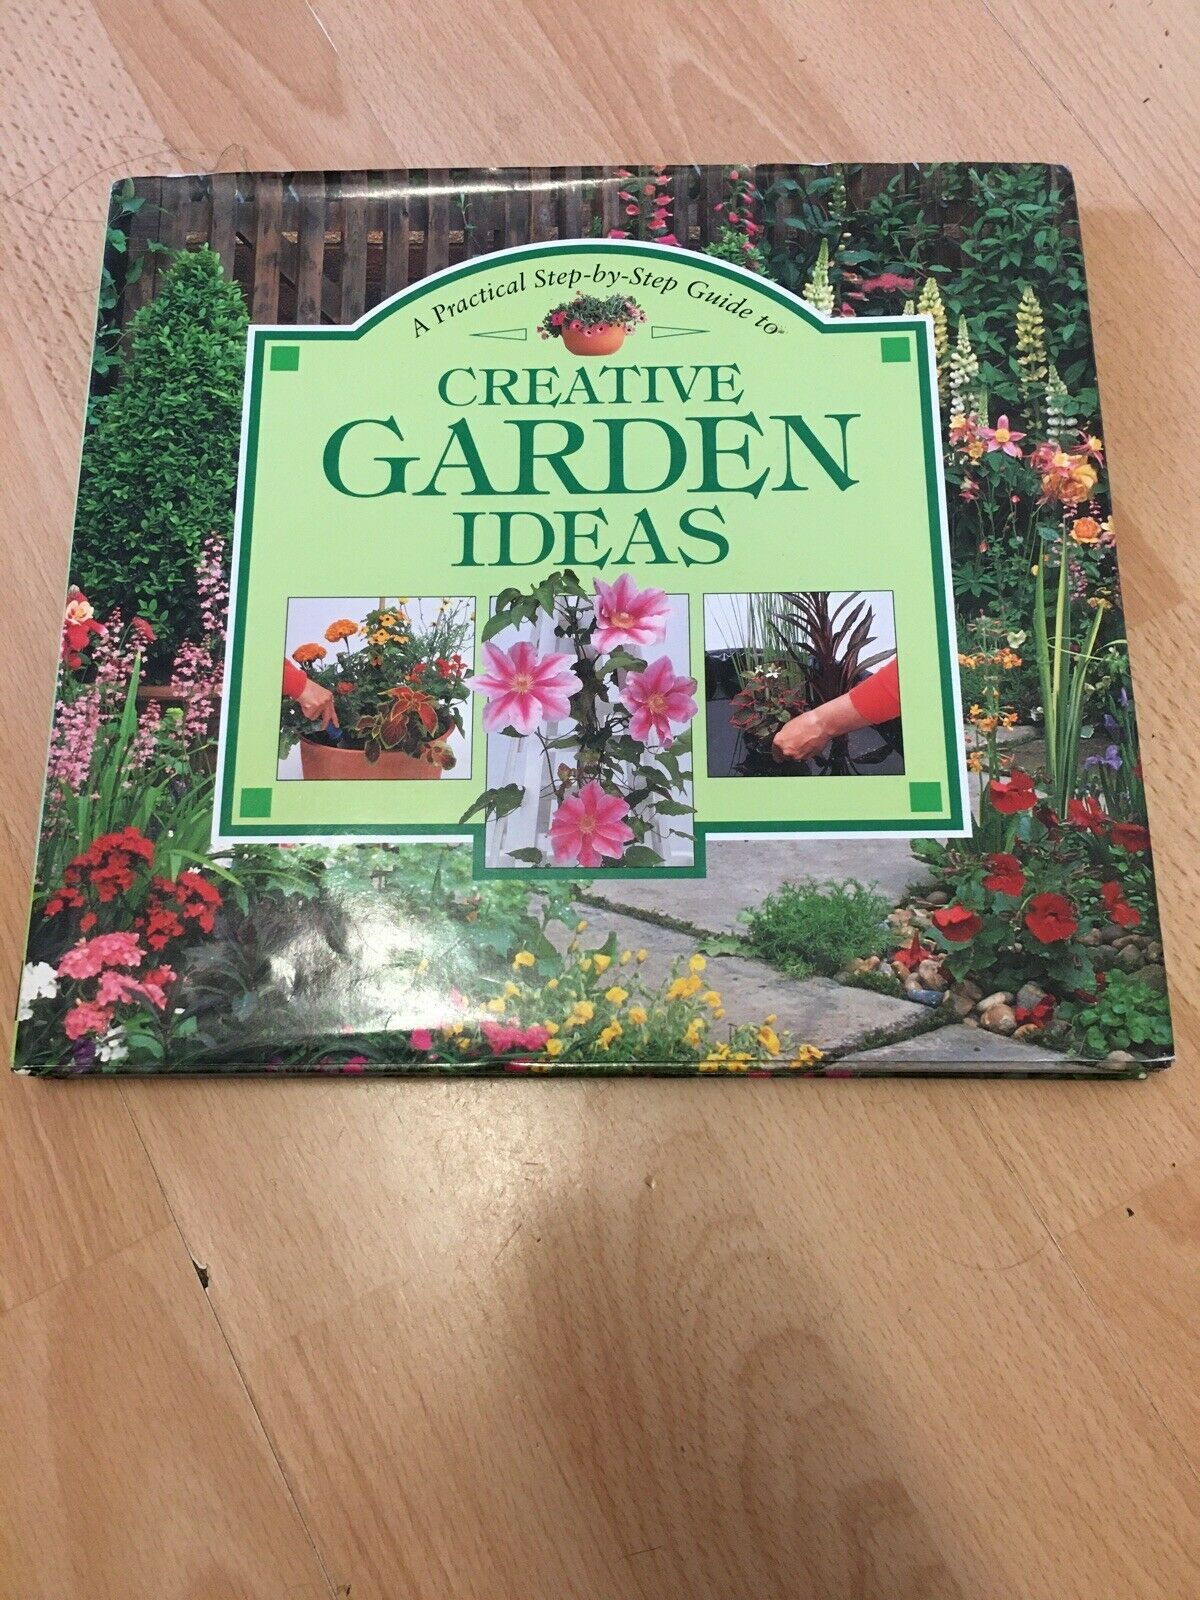 Creative Garden Ideas. Condition is Good. Dispatched with Royal Mail 2nd Class. Please note that I will NOT be able to post any items between Wednesday 23 September and Wednesday 30 September due to holiday commitments, please do not bid unless you are happy with this dispatch delay. #CreativeGardenIdeas